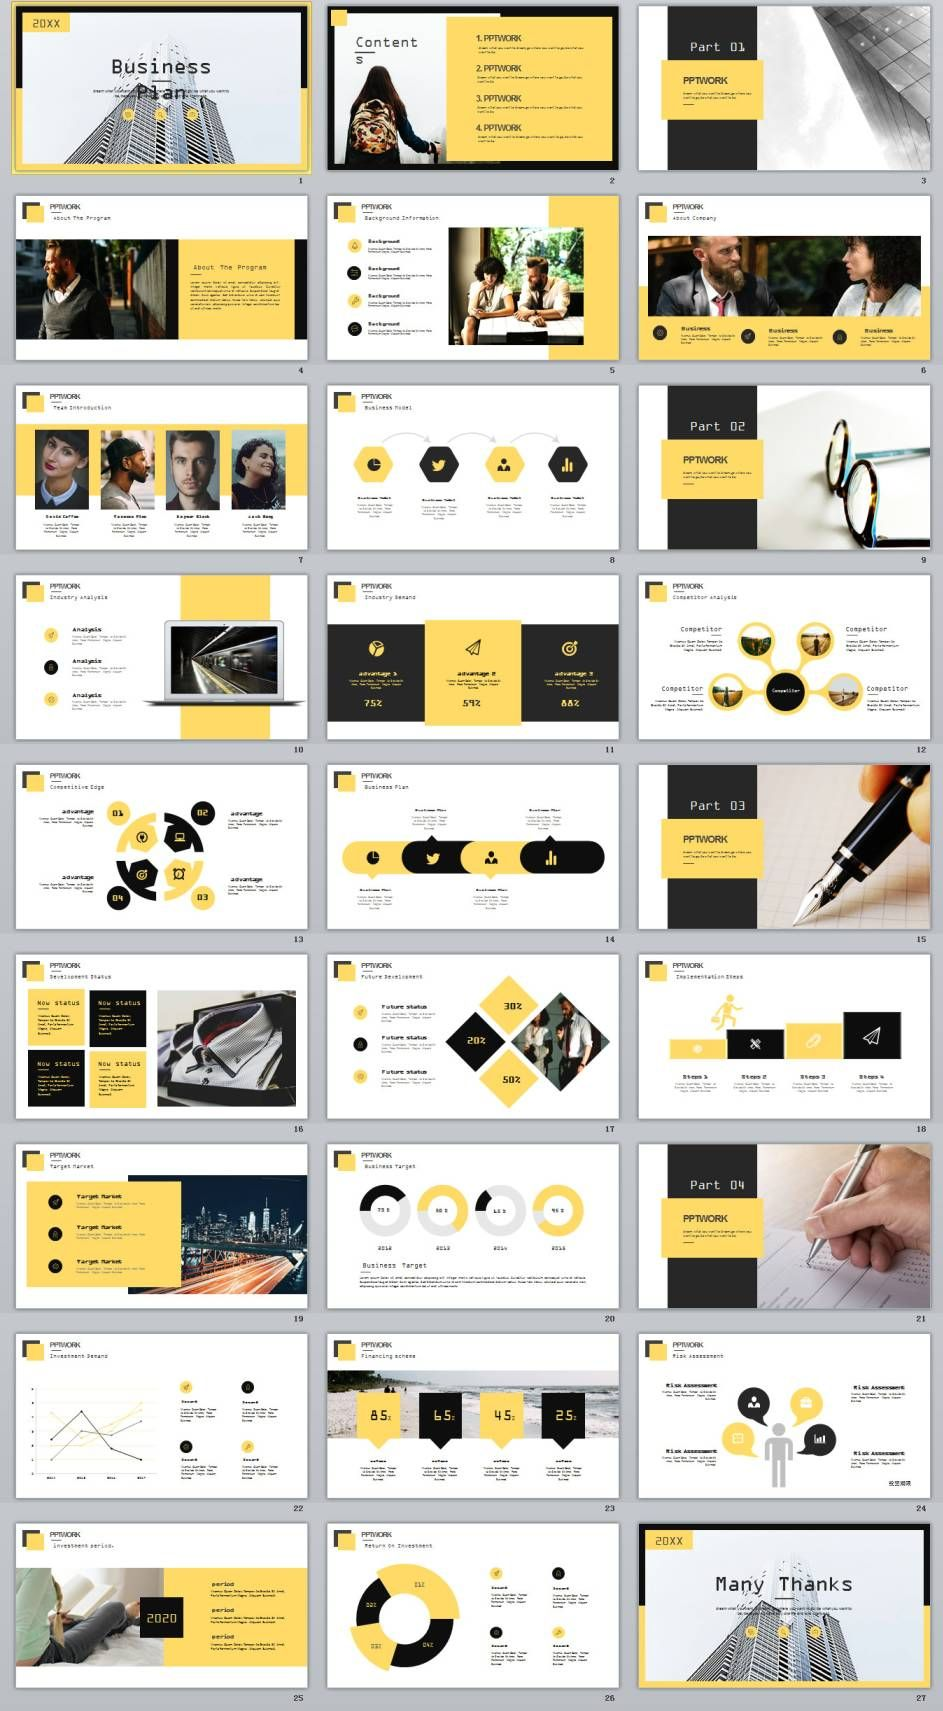 27 yellow business plan report powerpoint template apresentao 27 yellow business plan report powerpoint template toneelgroepblik Choice Image